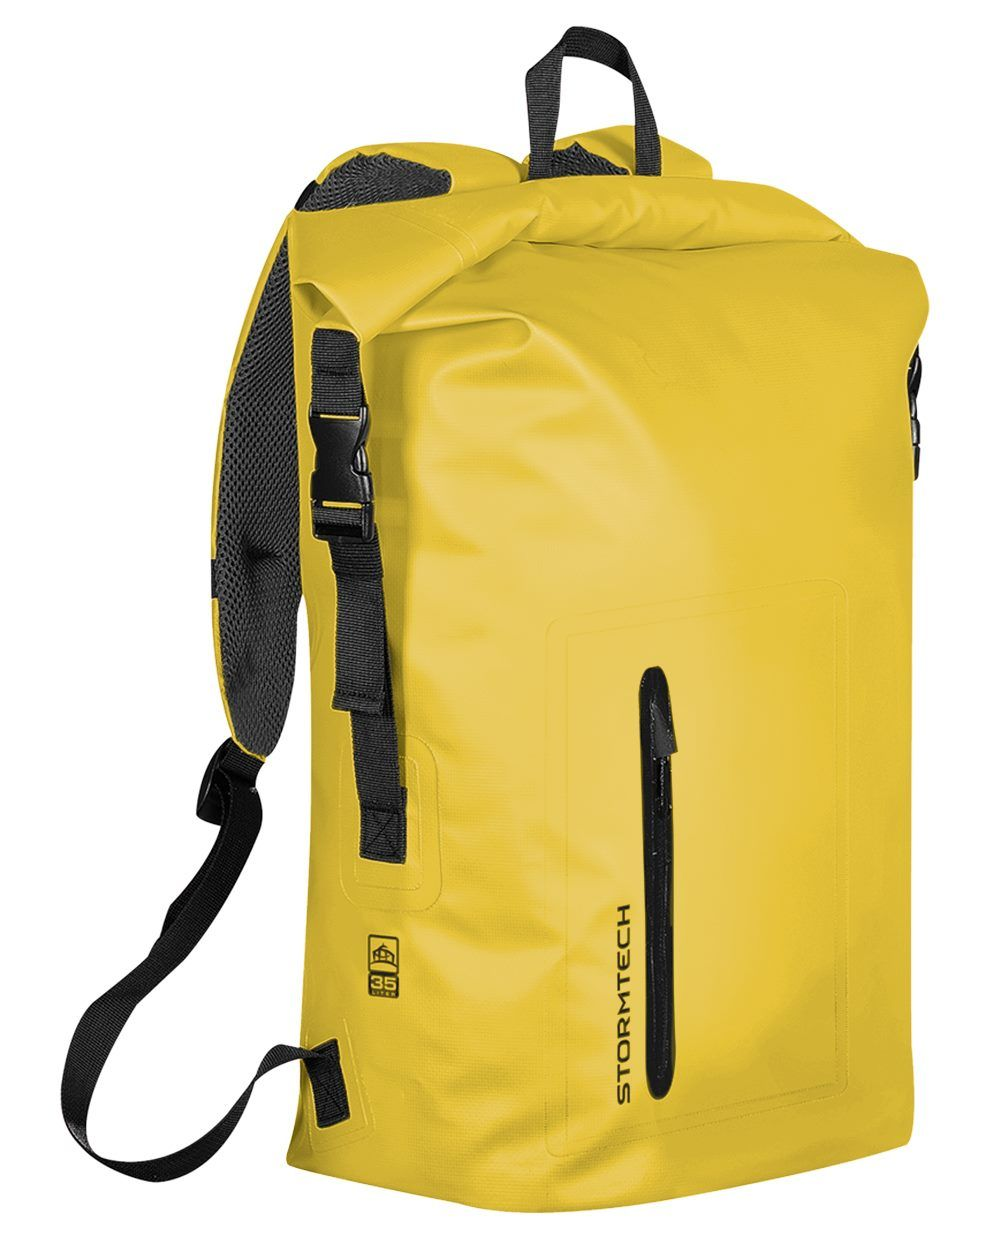 Stormtech - 35L Waterproof Roll Top Backpack - | TravelKit ...